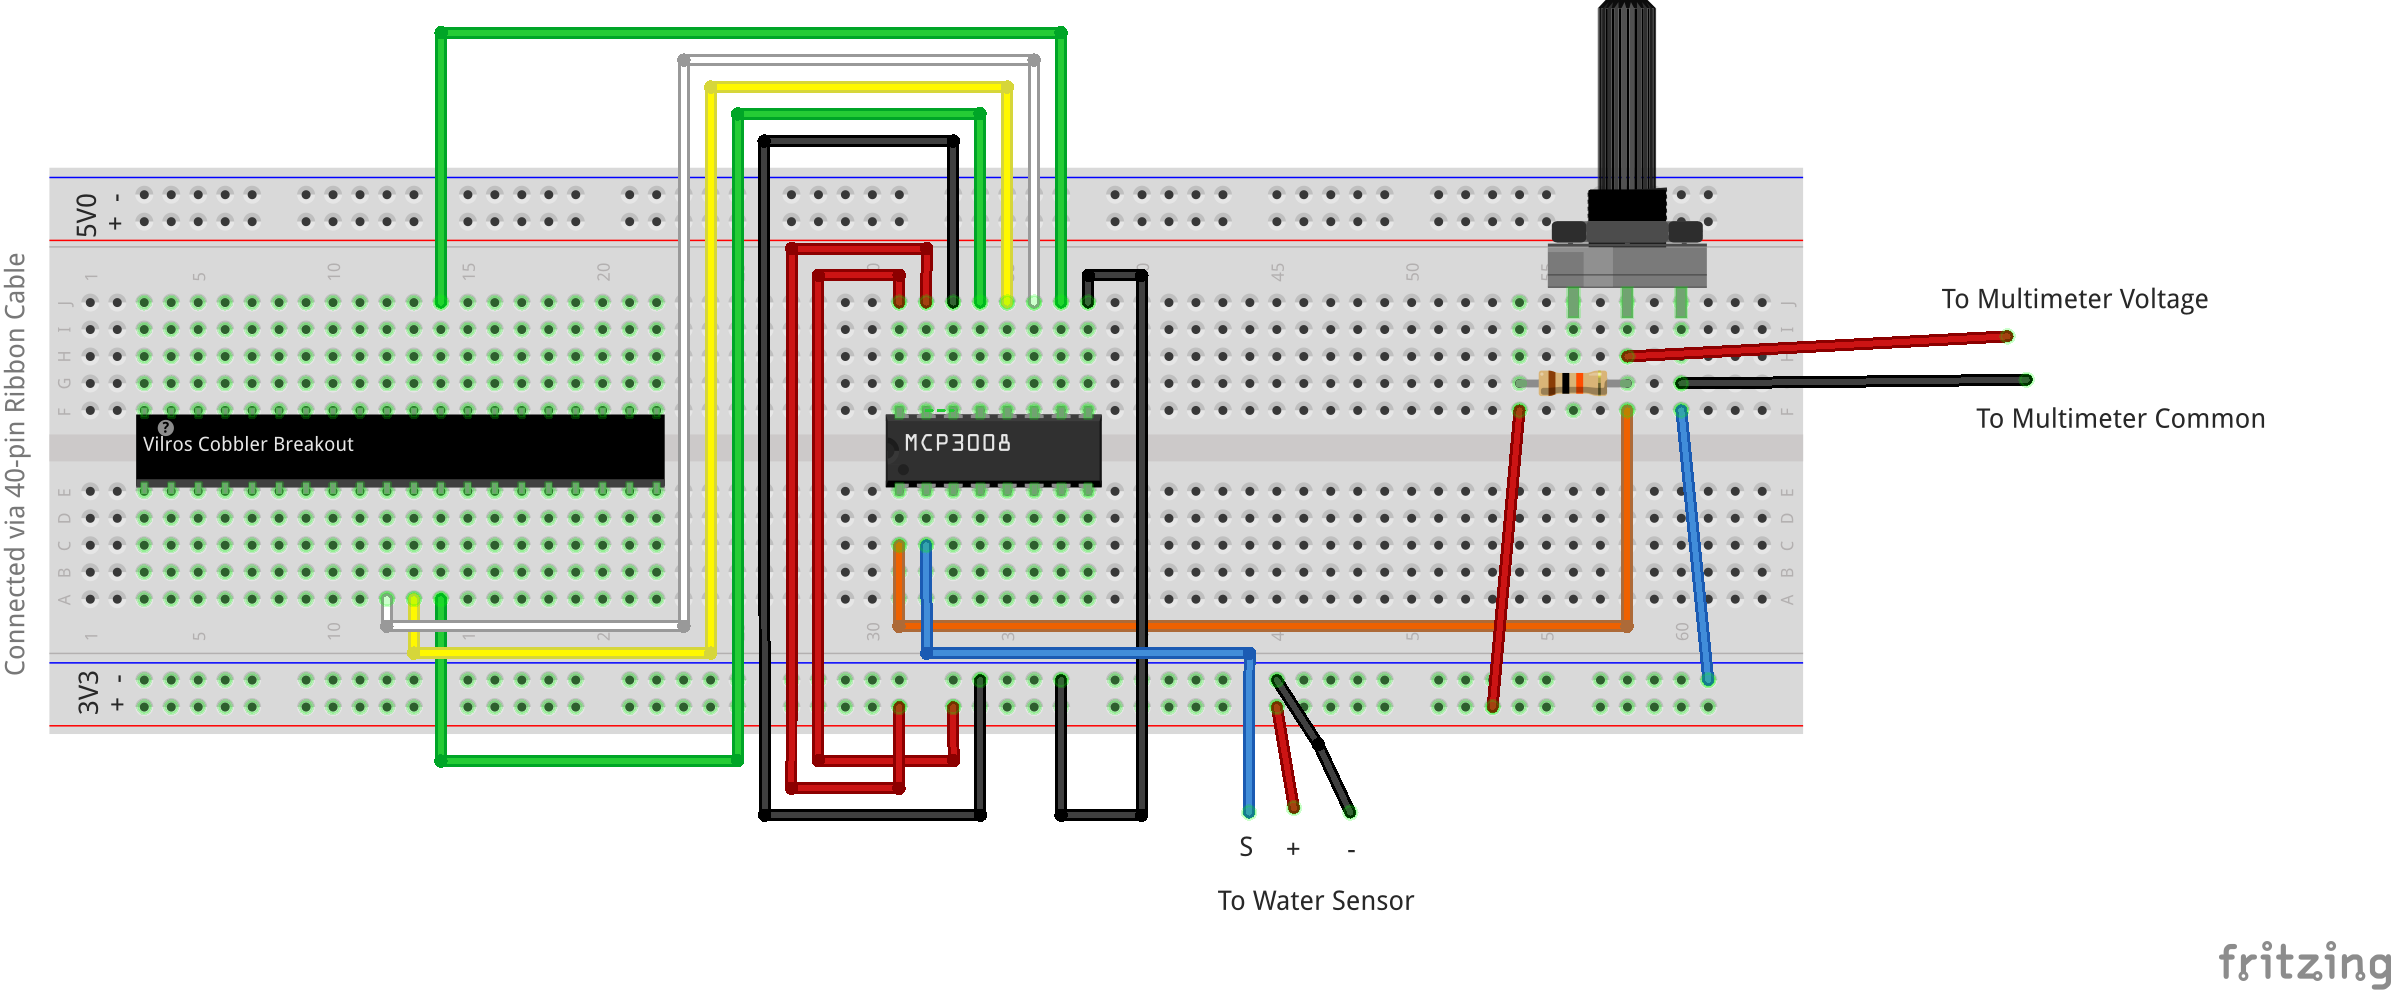 High Sensitivity Water Sensor On Mcp3008 Ribbon Cable Schematic Fritzing File